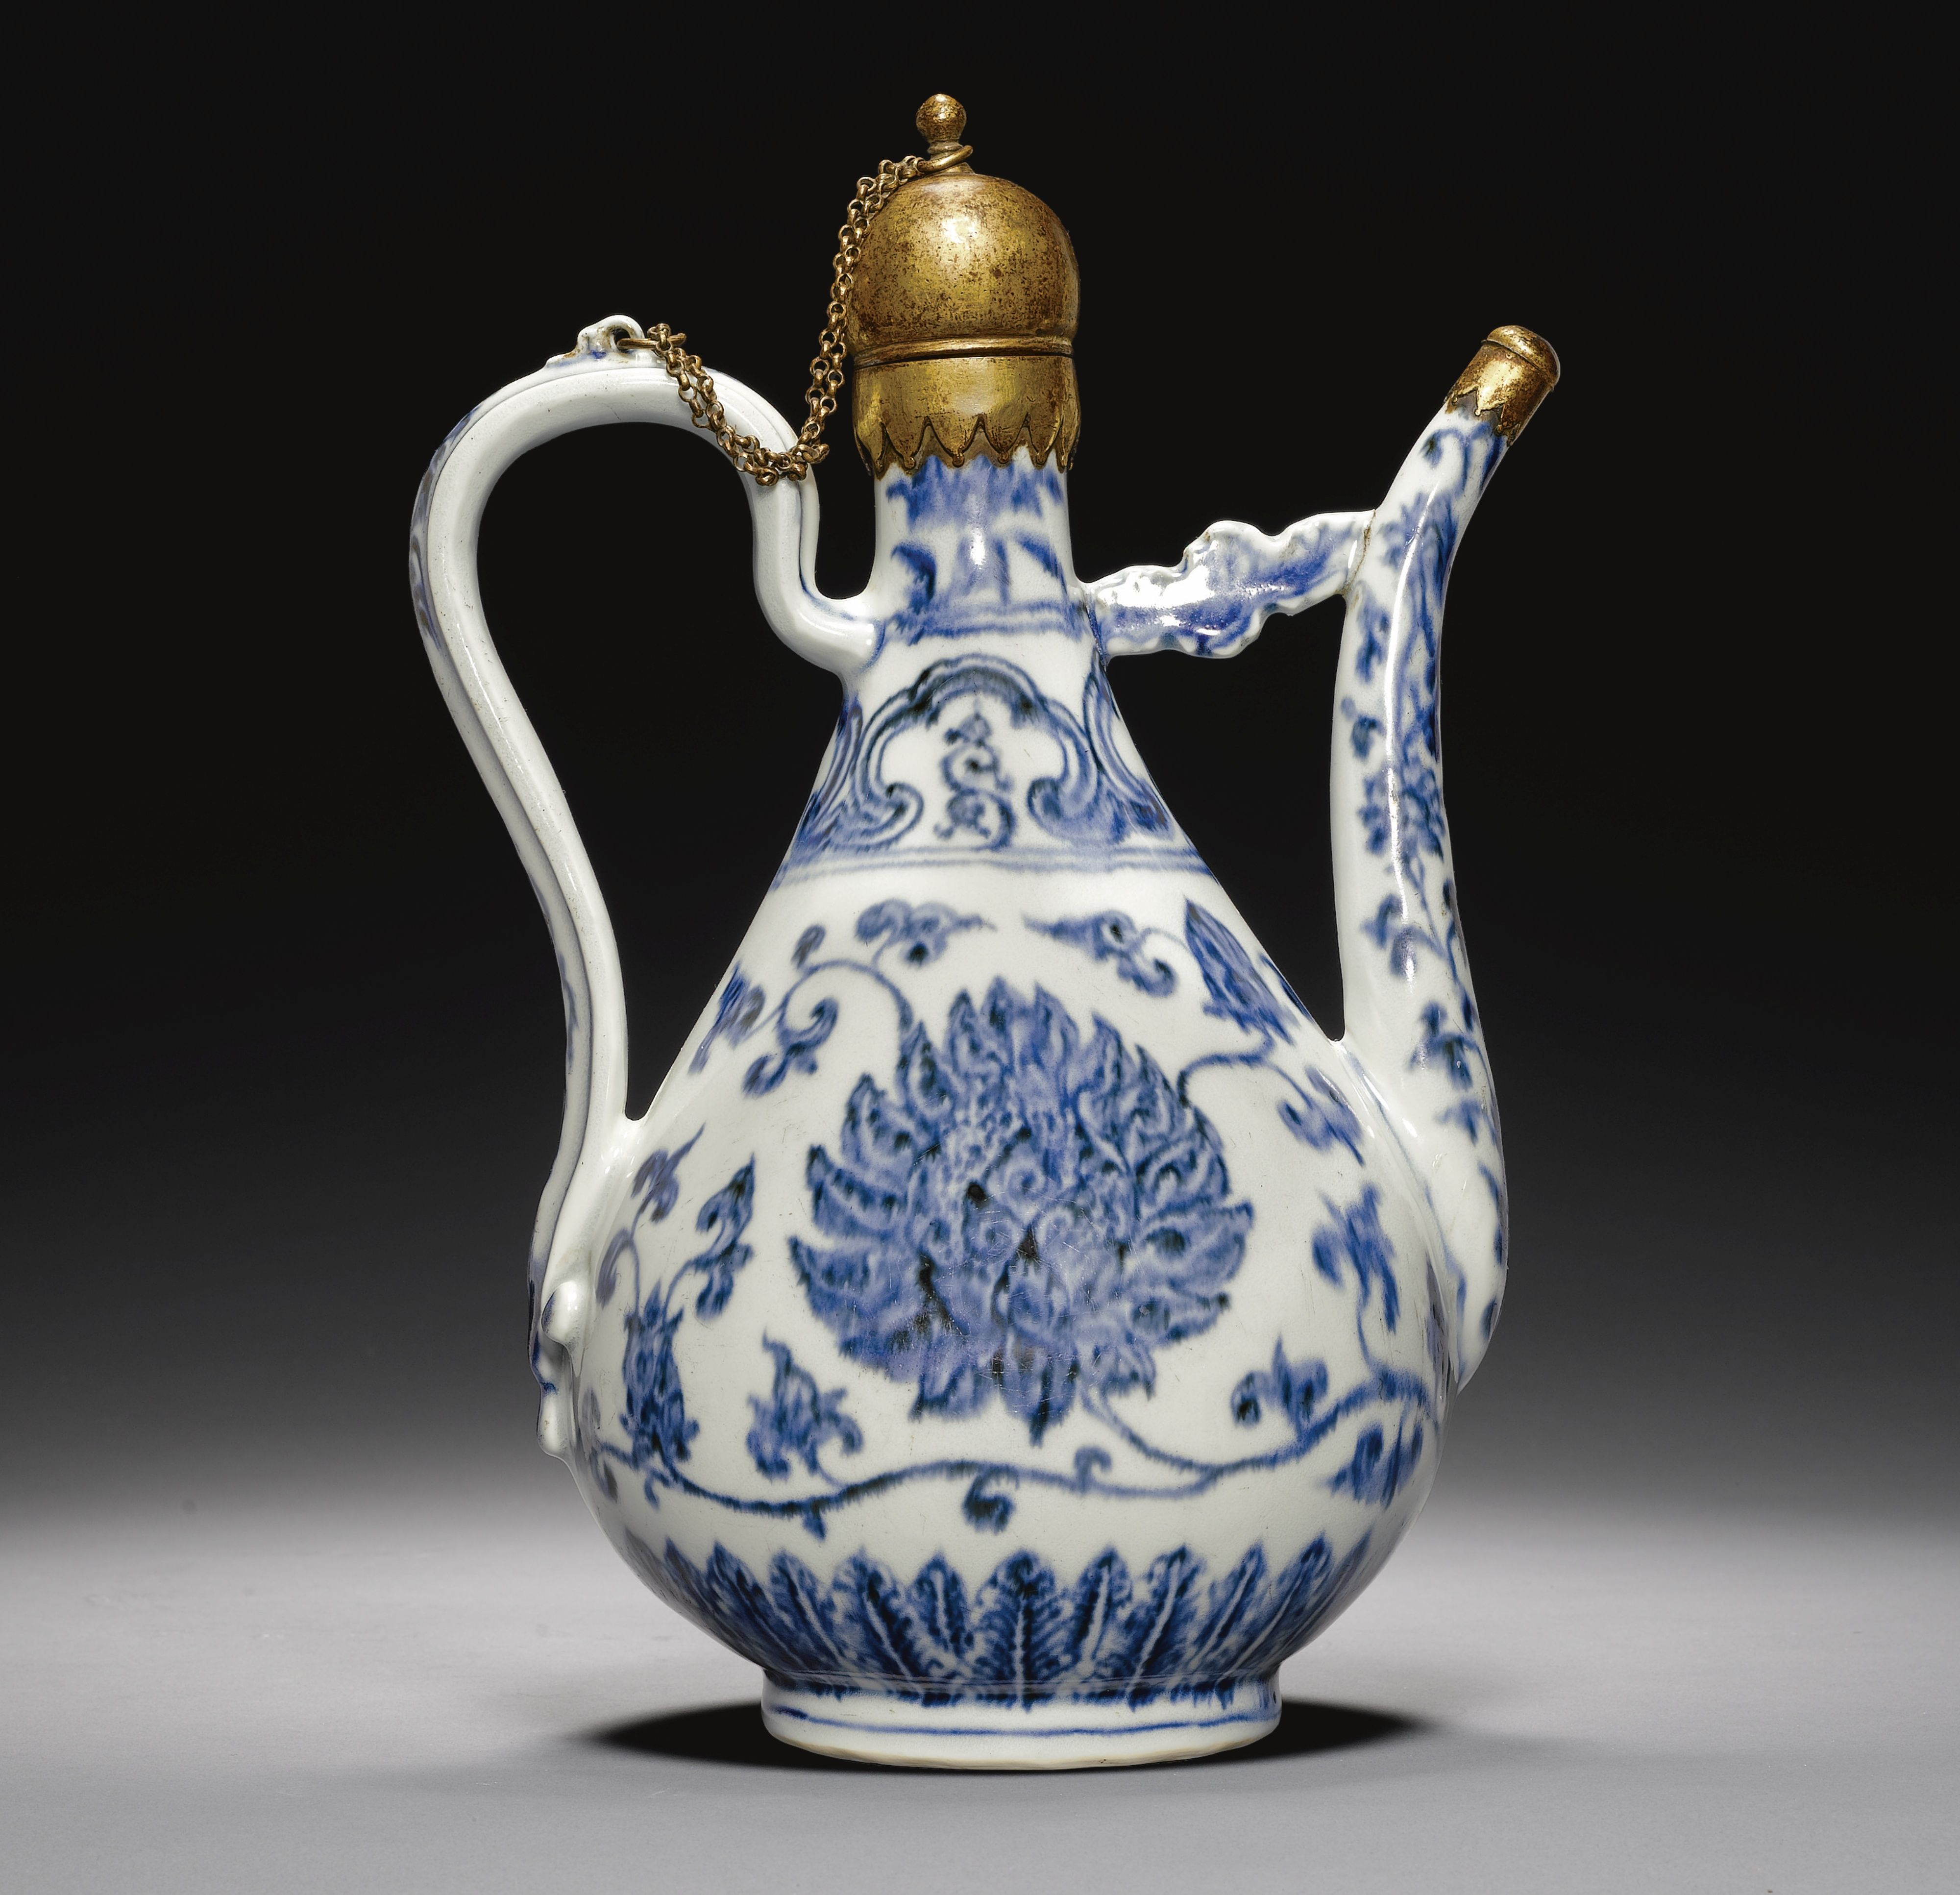 A Rare Blue And White Porcelain Ewer Made For The Islamic